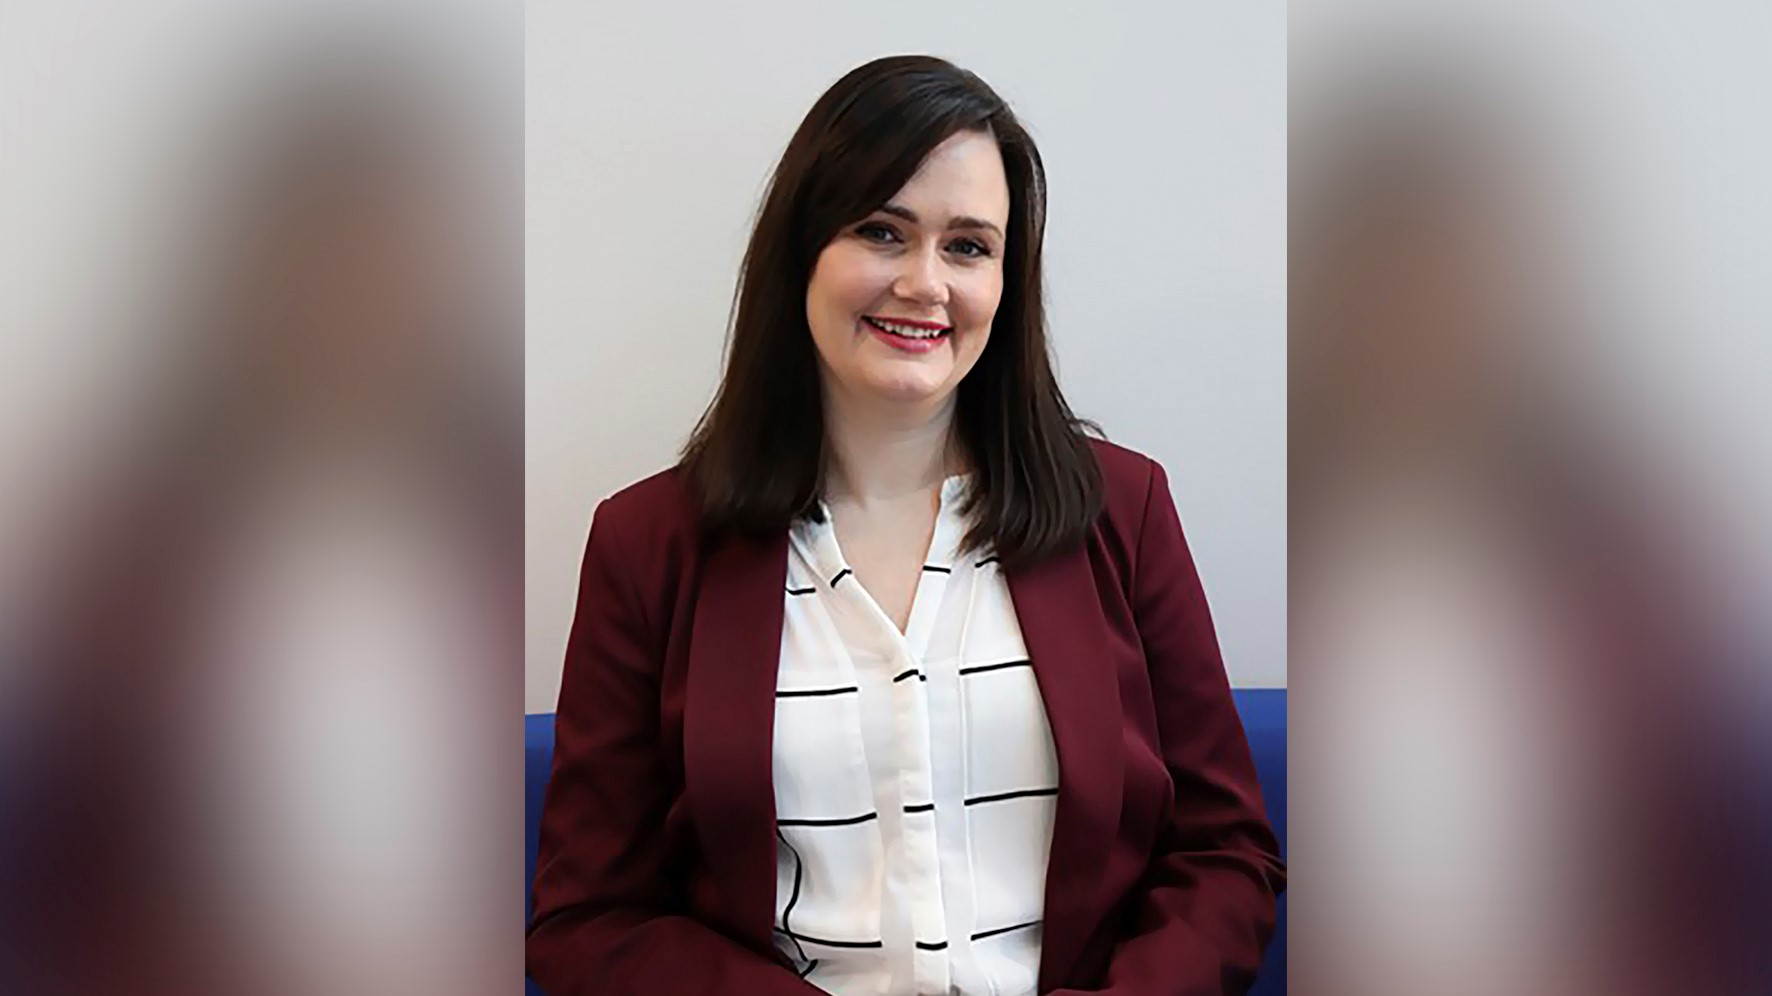 PCIAW   PCIAW News   Laura Hassoba appointed as new Finance Director for Johnsons Workwear